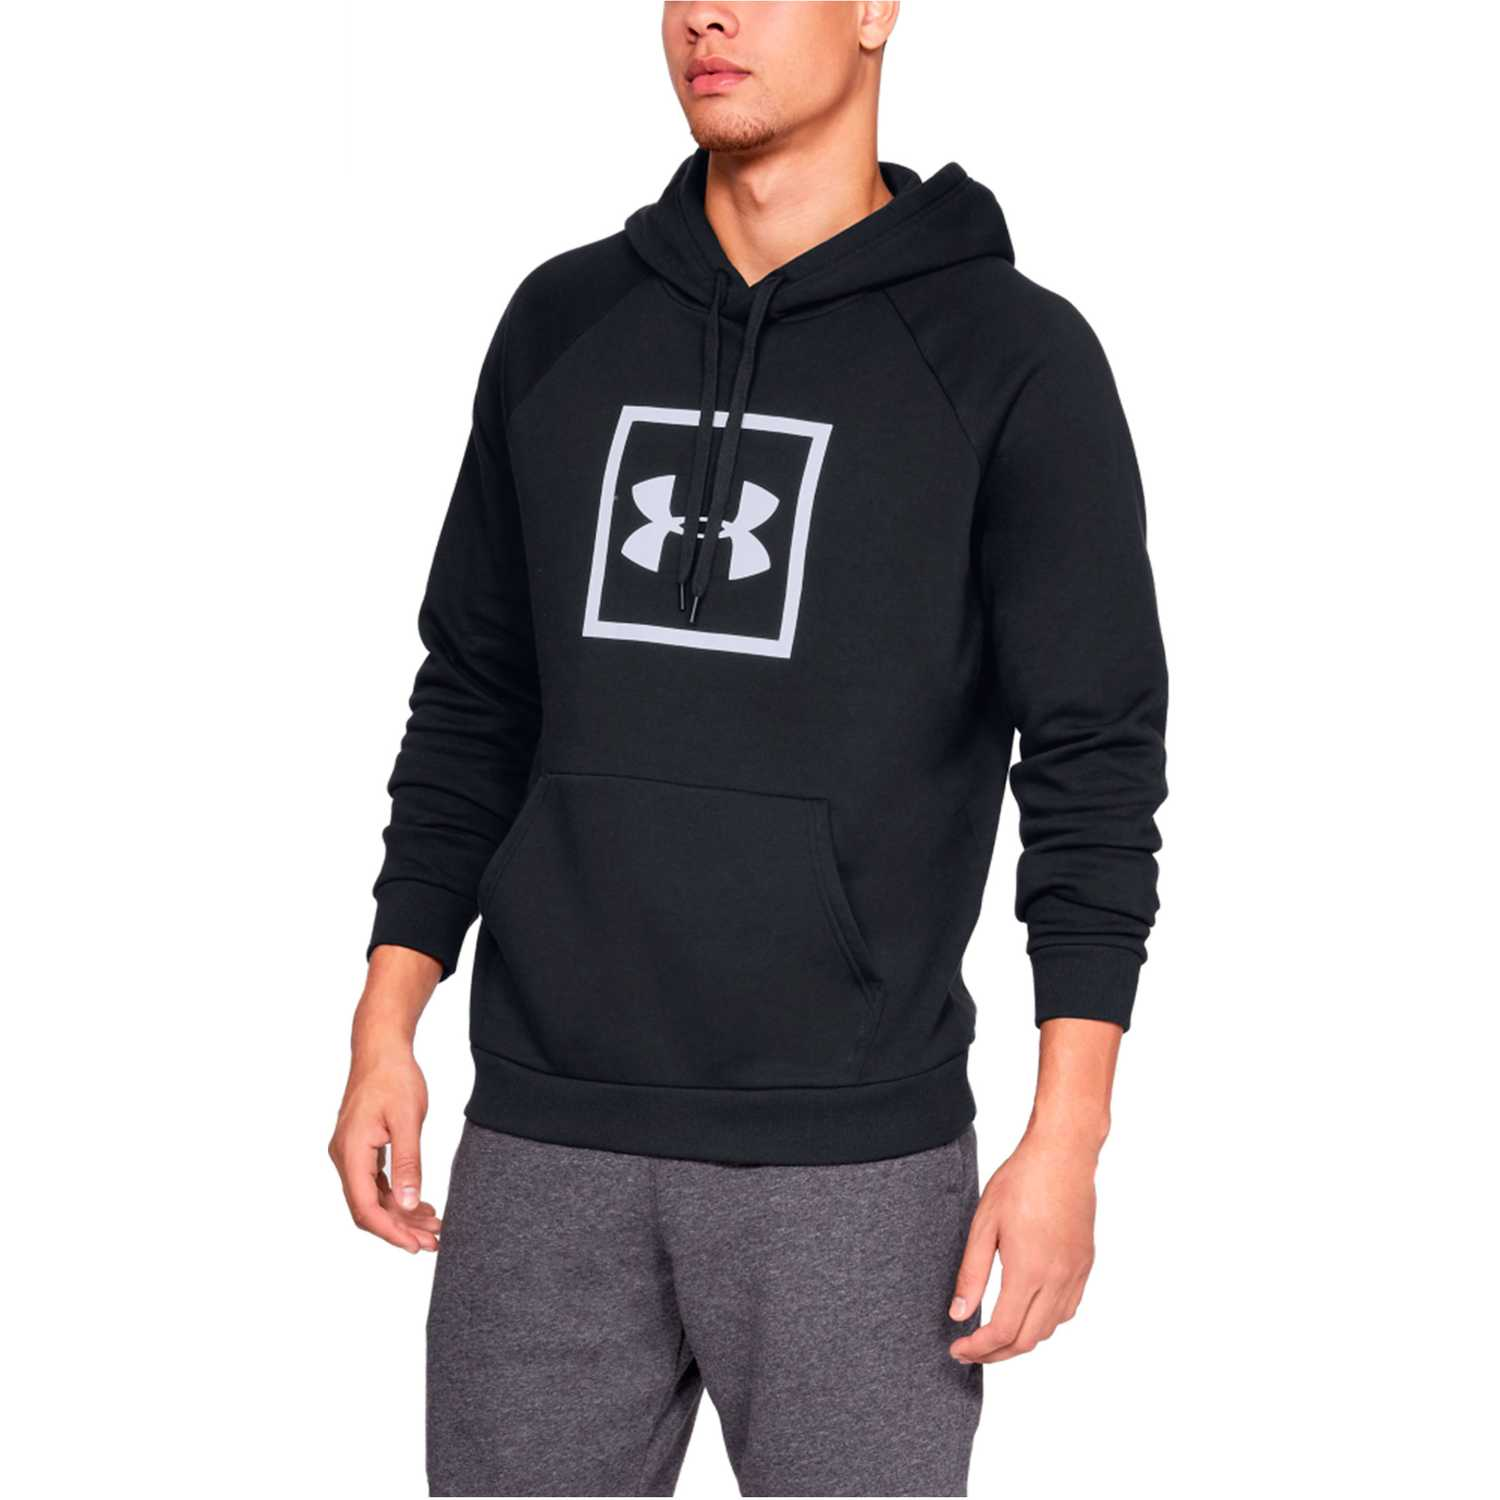 Under Armour rival fleece logo hoodie Negro / blanco Hoodies Deportivos